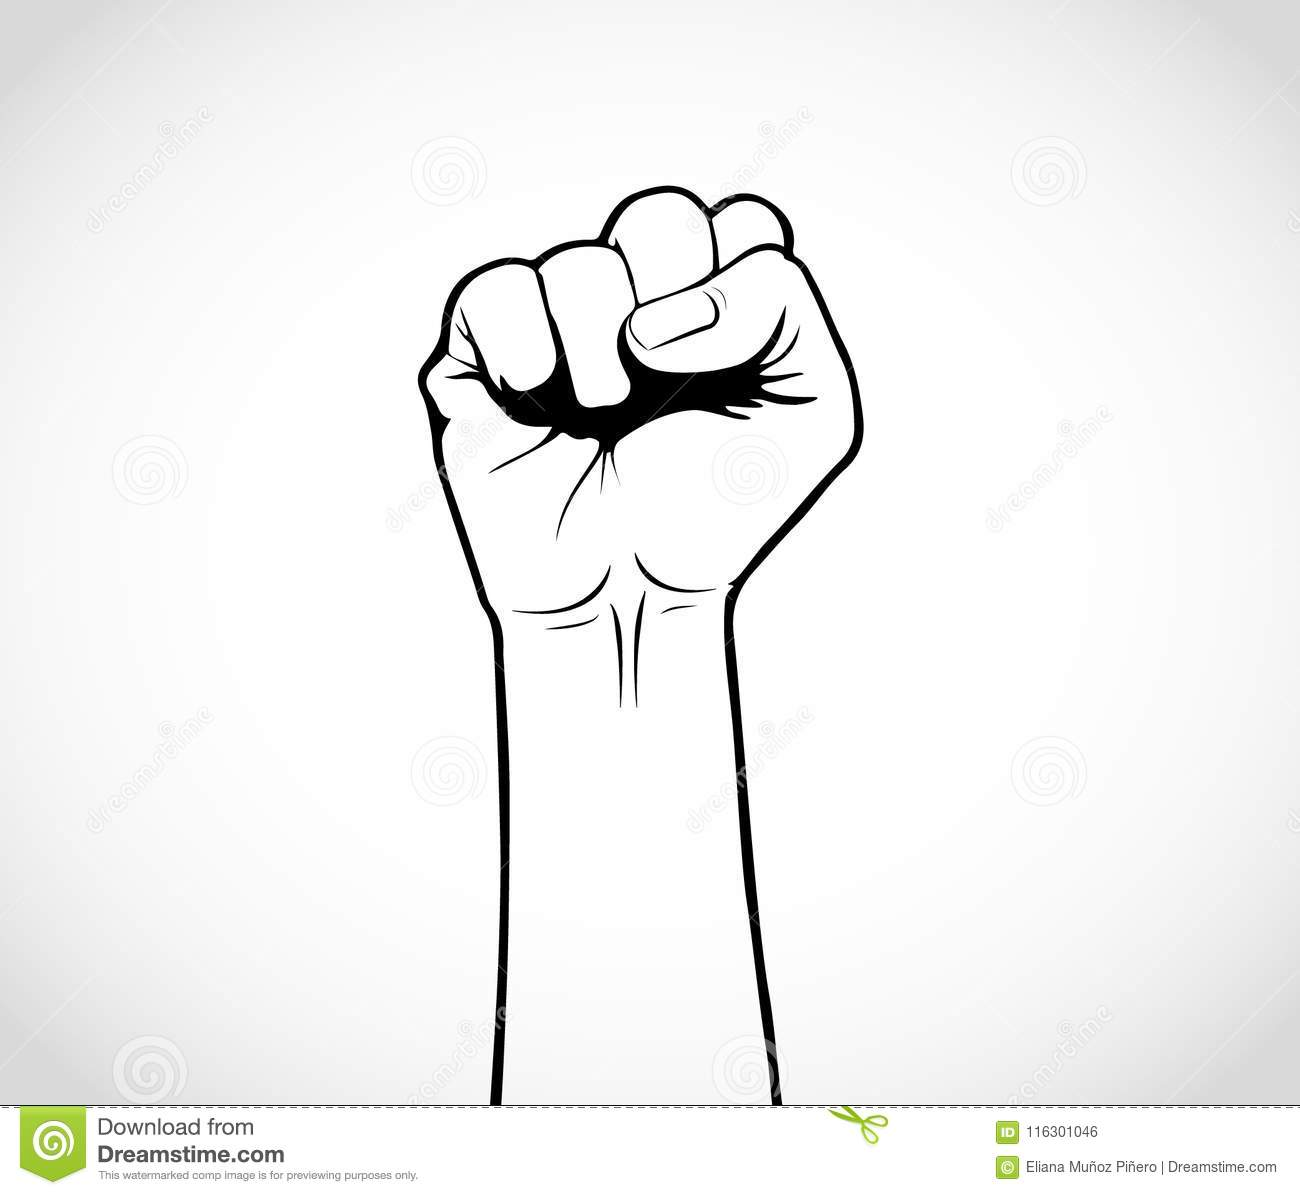 Illustration of an upward fist draw black and white its revolution time